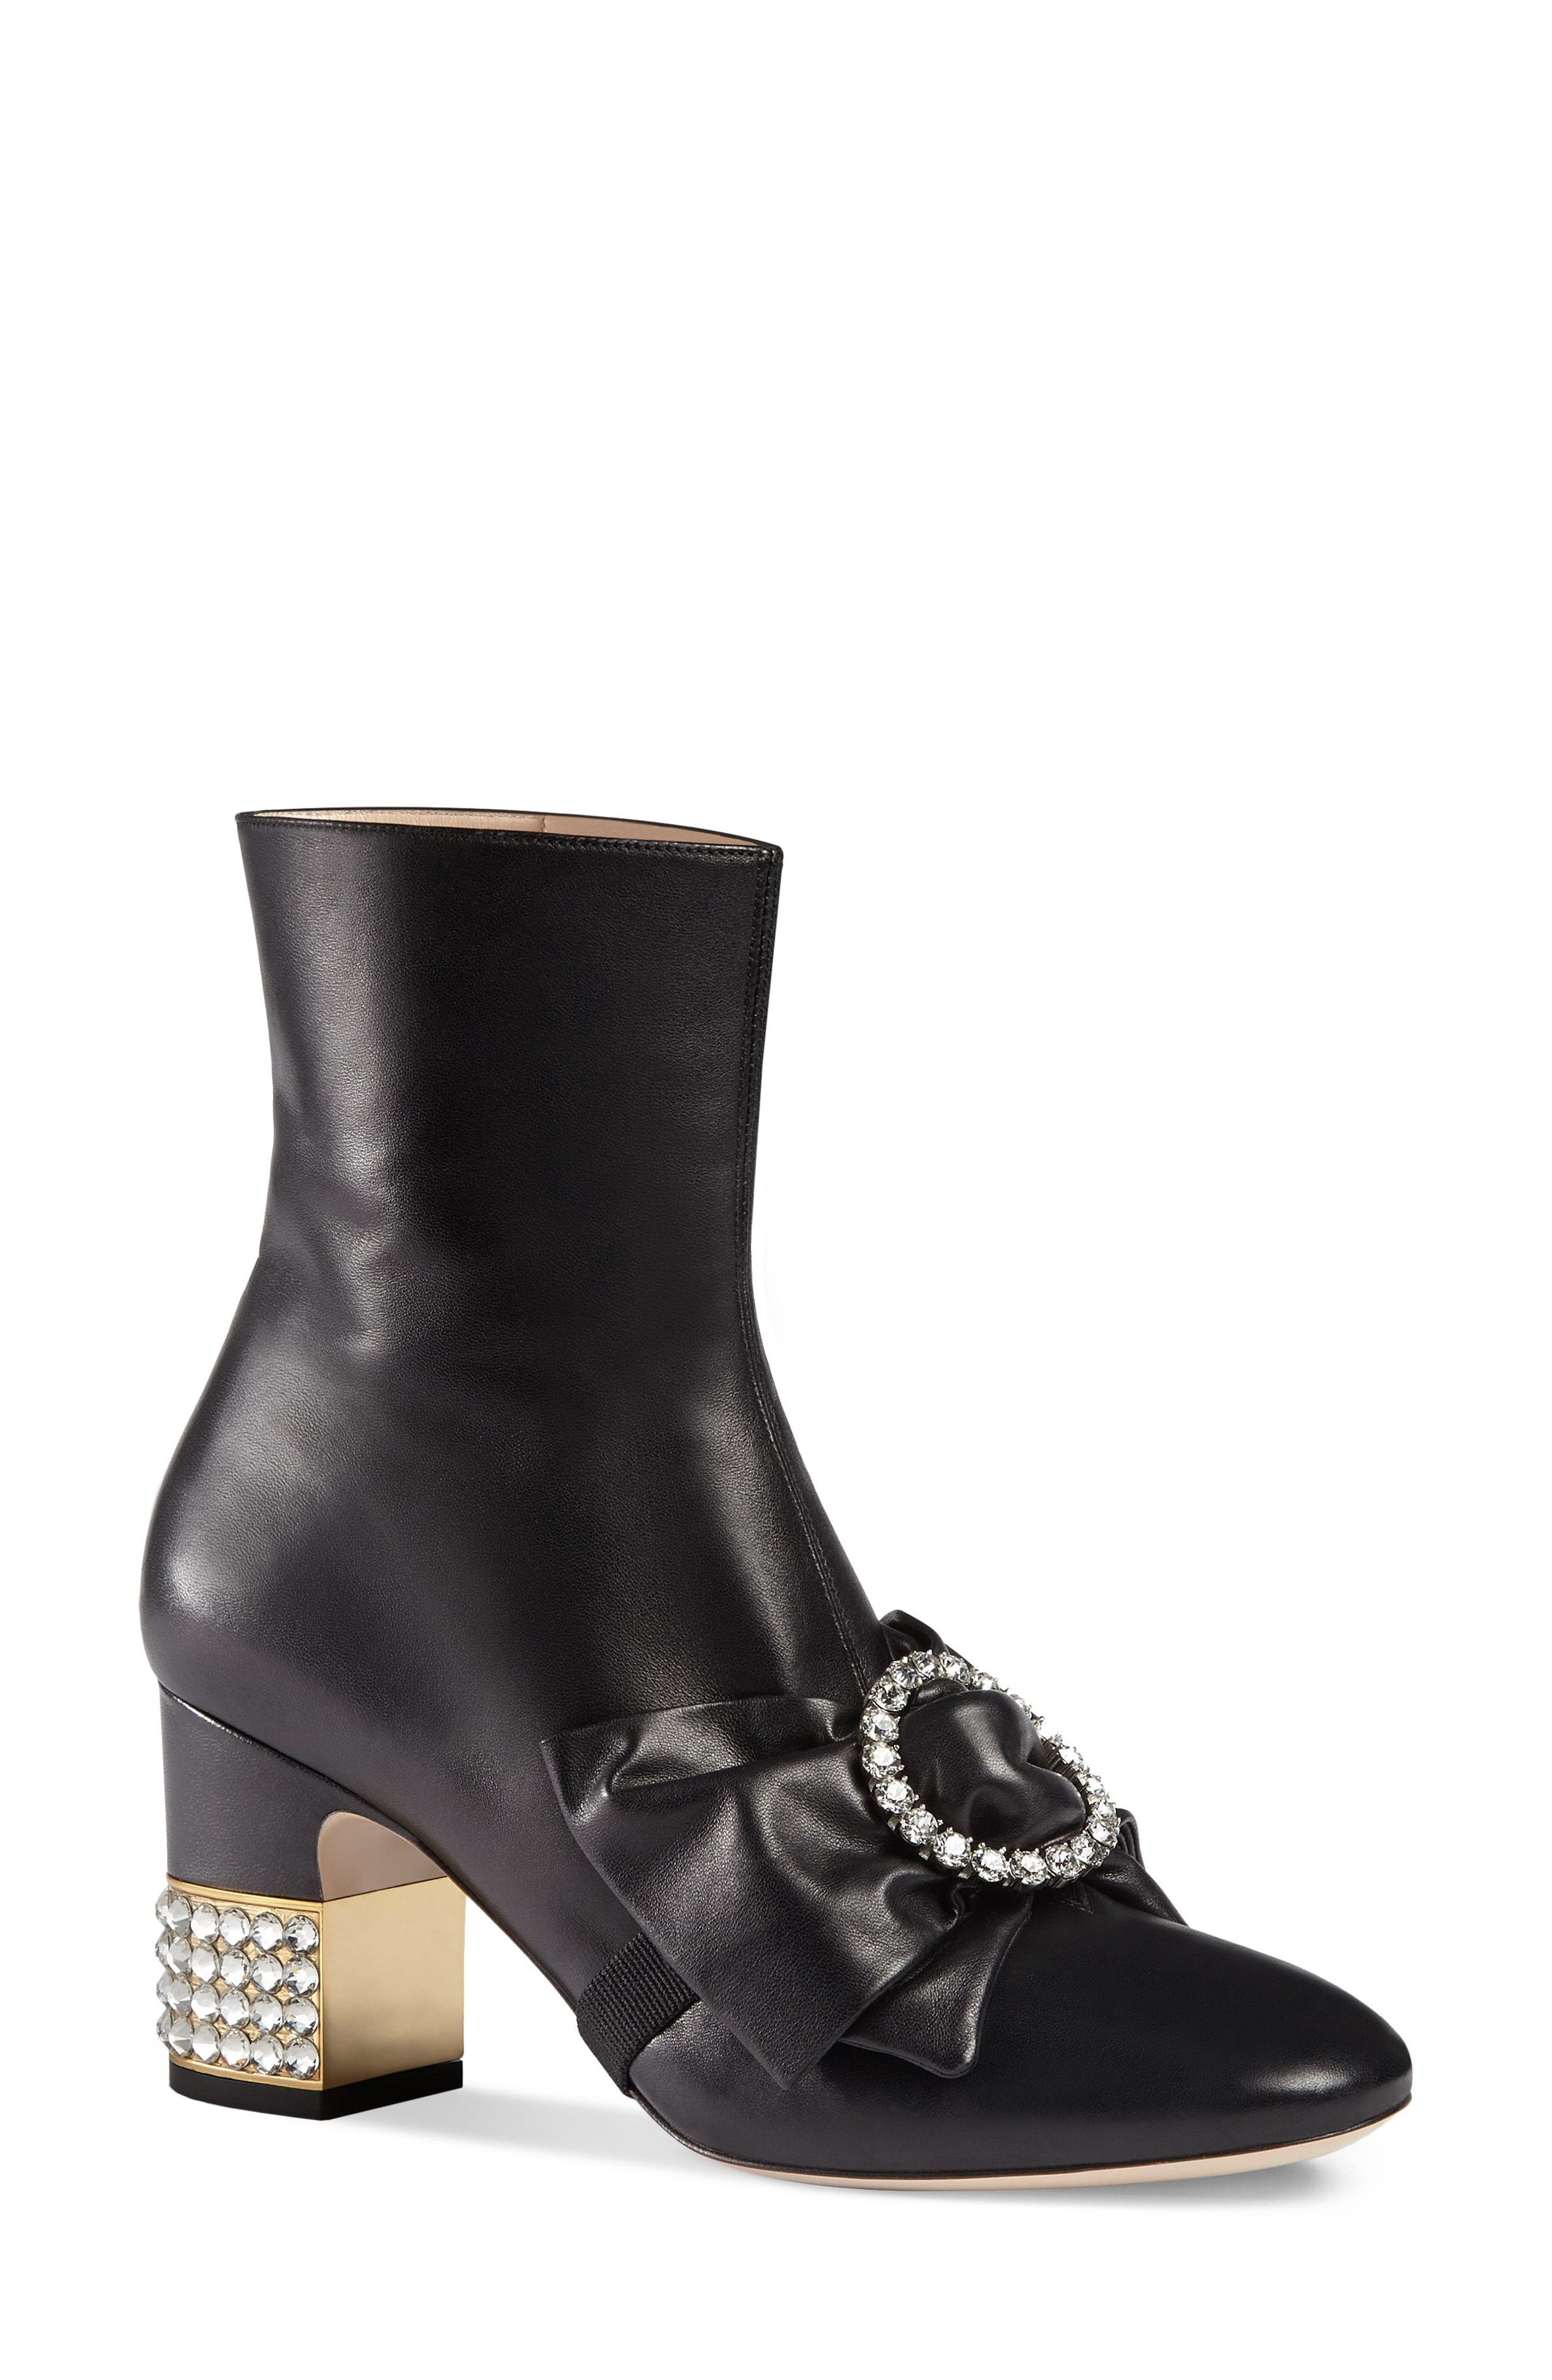 Alternate Image 1 Selected - Gucci Candy Bow Crystal Bootie (Women)